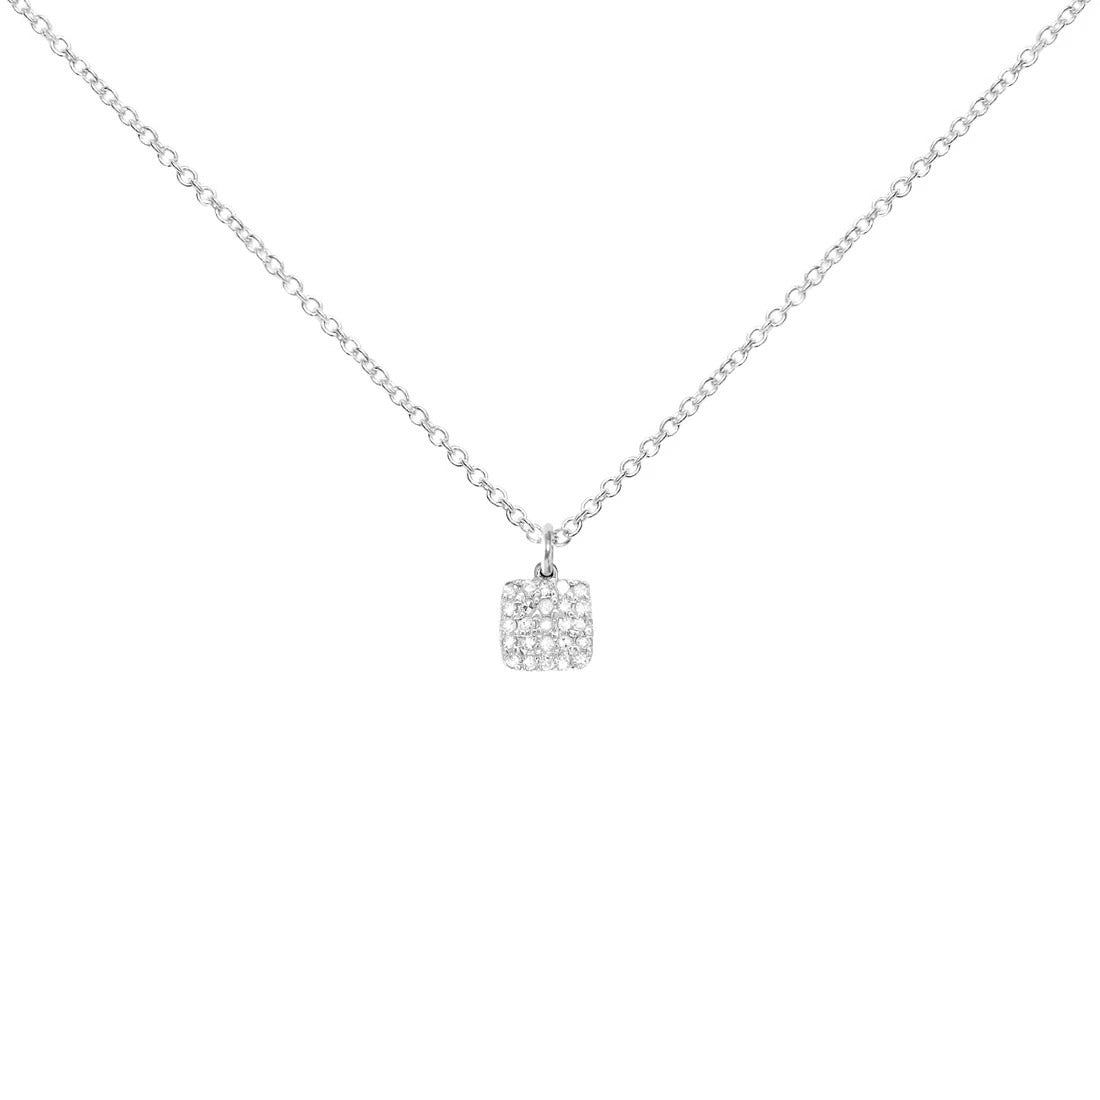 Sterling Silver Necklace with Diamond Square